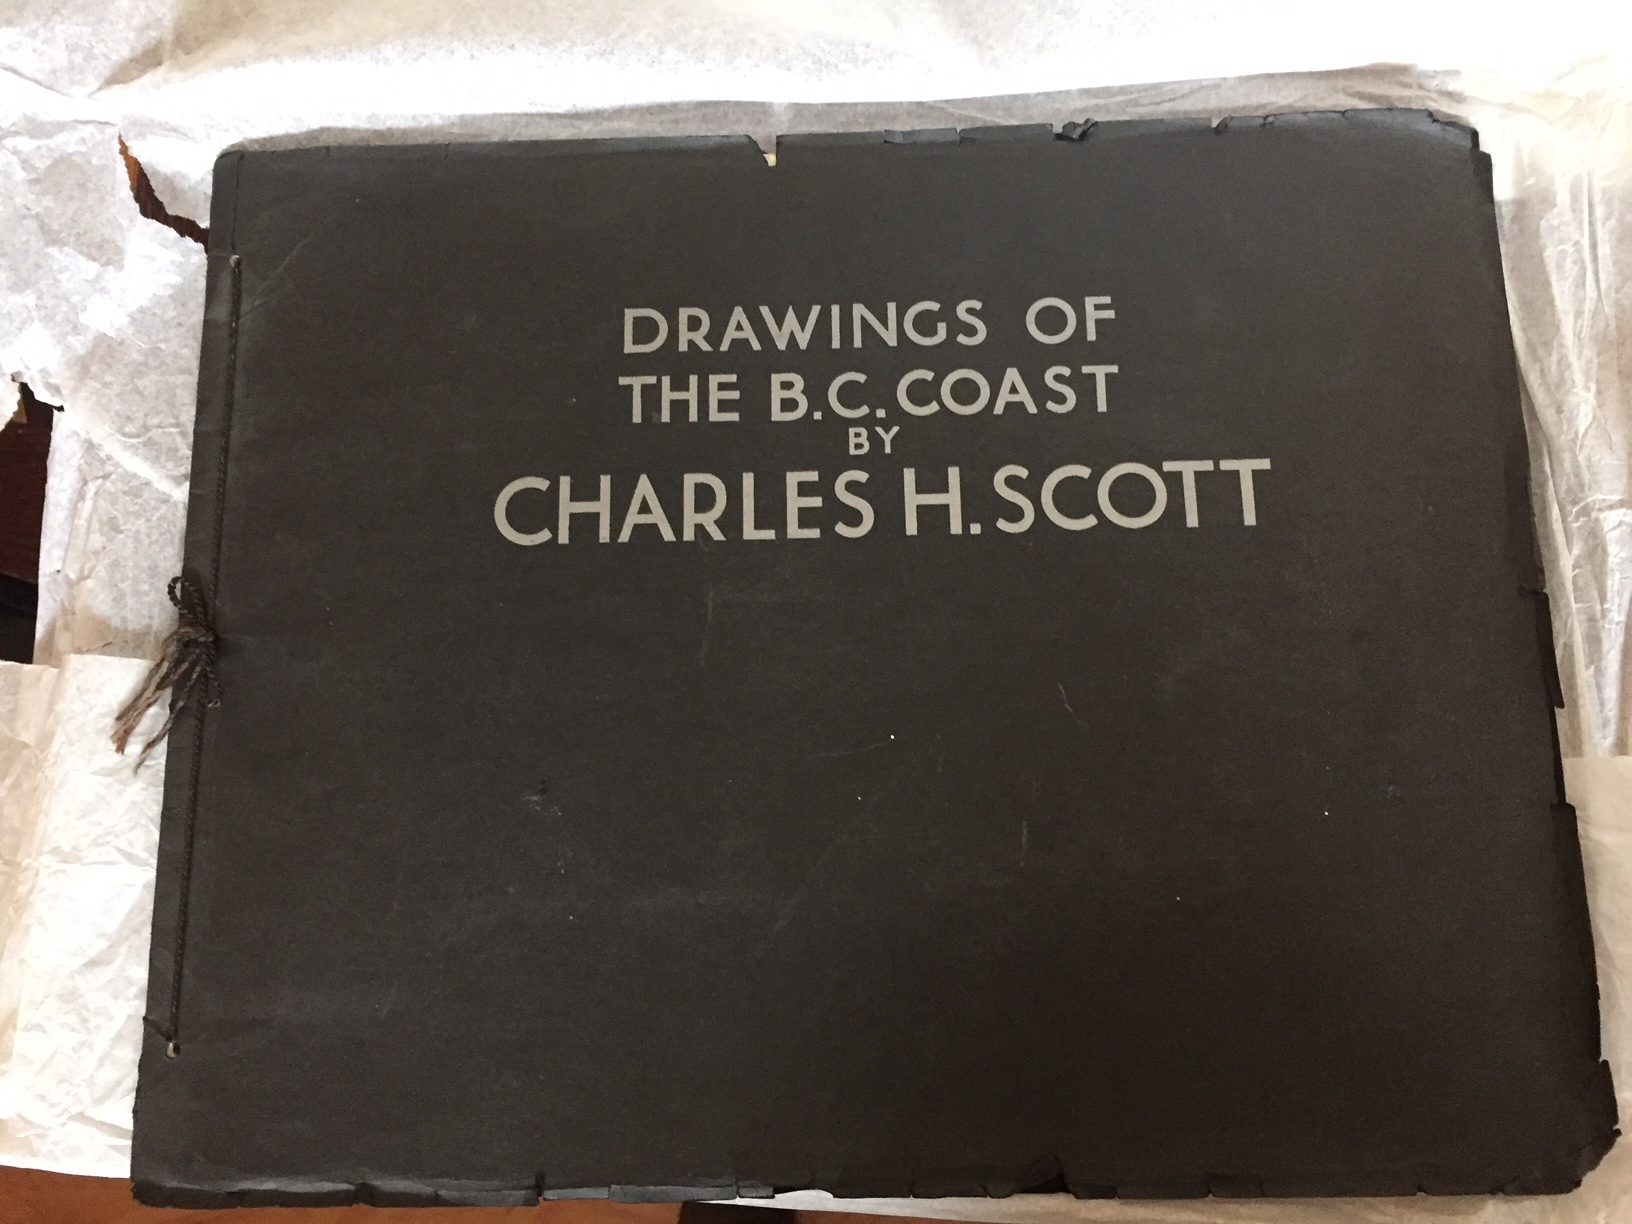 Drawings of the B.C. Coast by Charles H. Scott